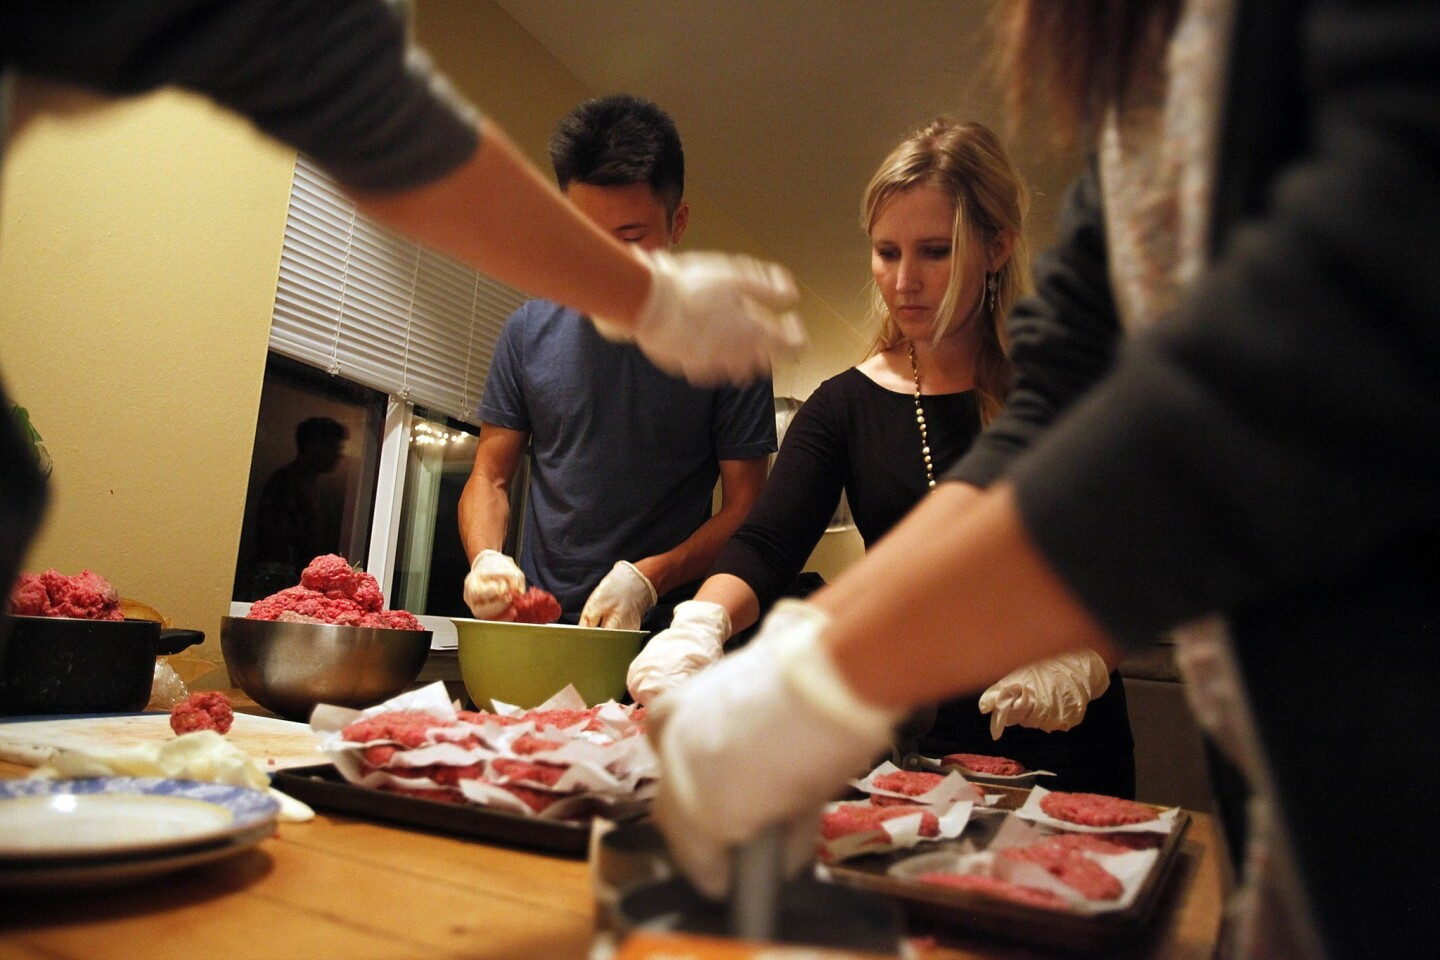 Students from UC Santa Barbara in Isla Vista make hamburgers in a leased building known as the Jesus Burgers house. After service, the grill is fired up.